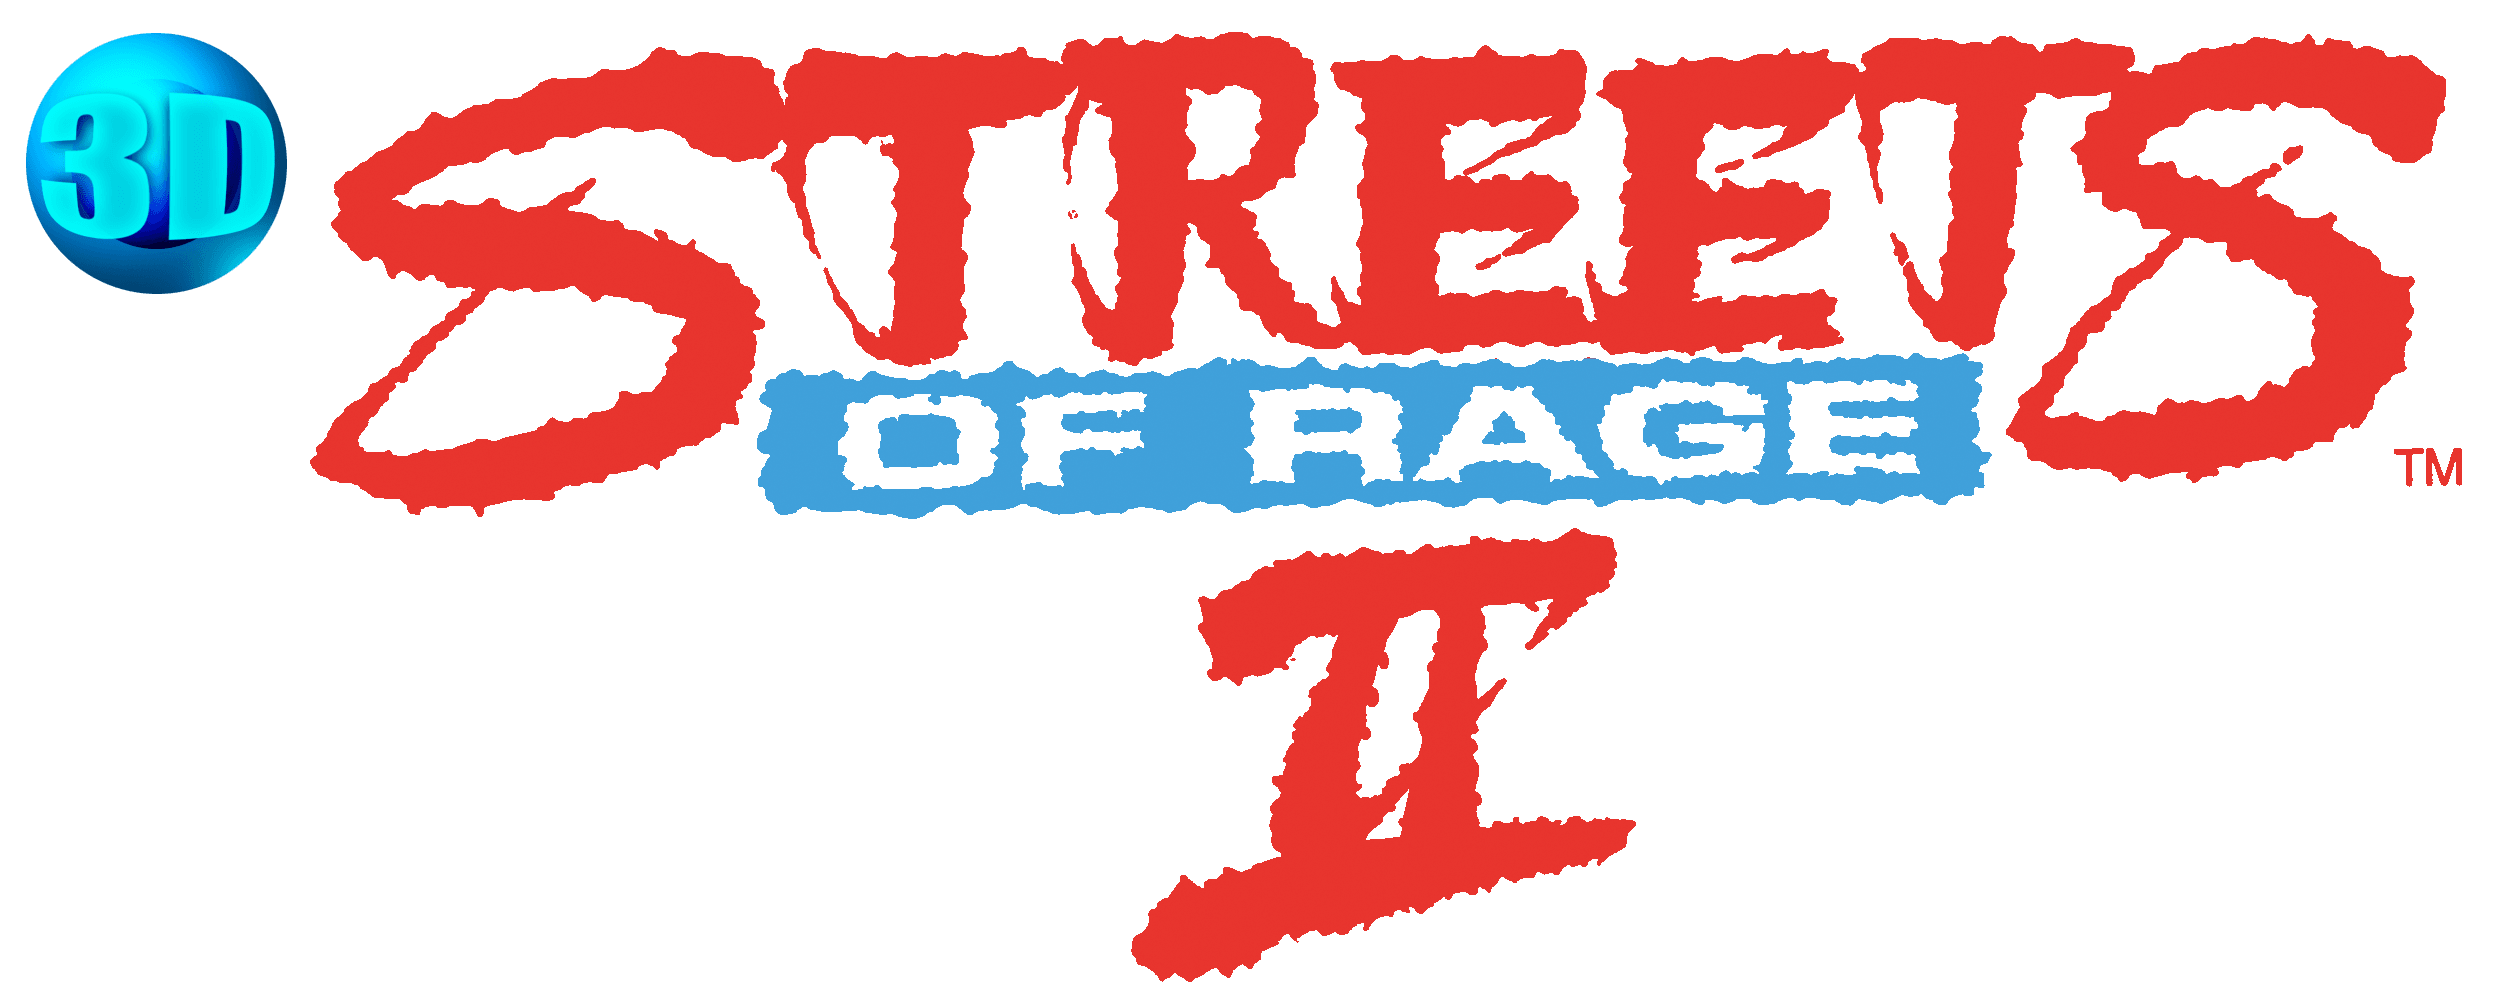 Streets of rage 2 logo png.  d details launchbox vector transparent library